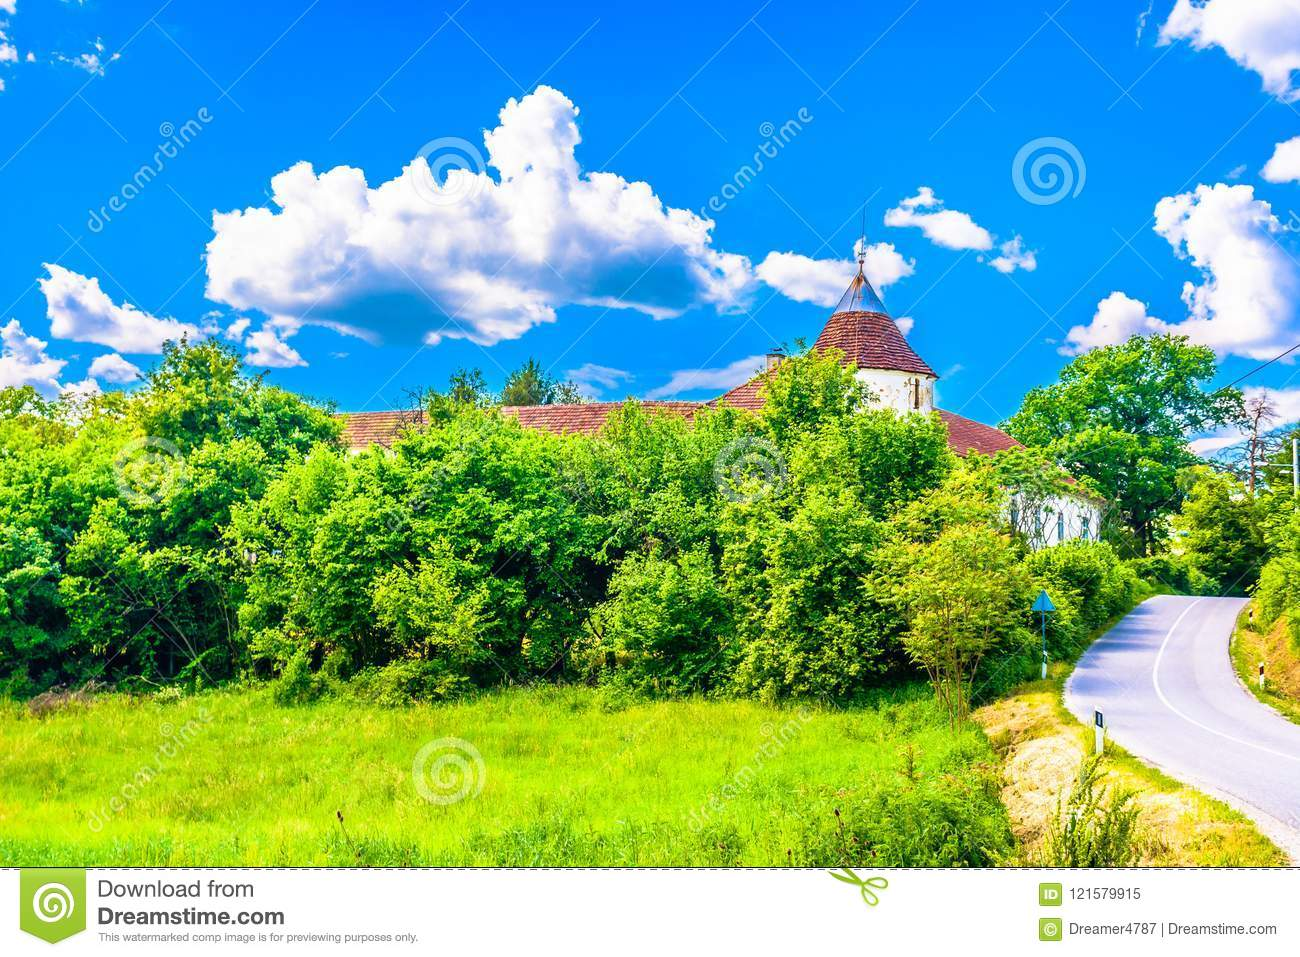 Colorful picturesque scenery in Zagorje, Europe.